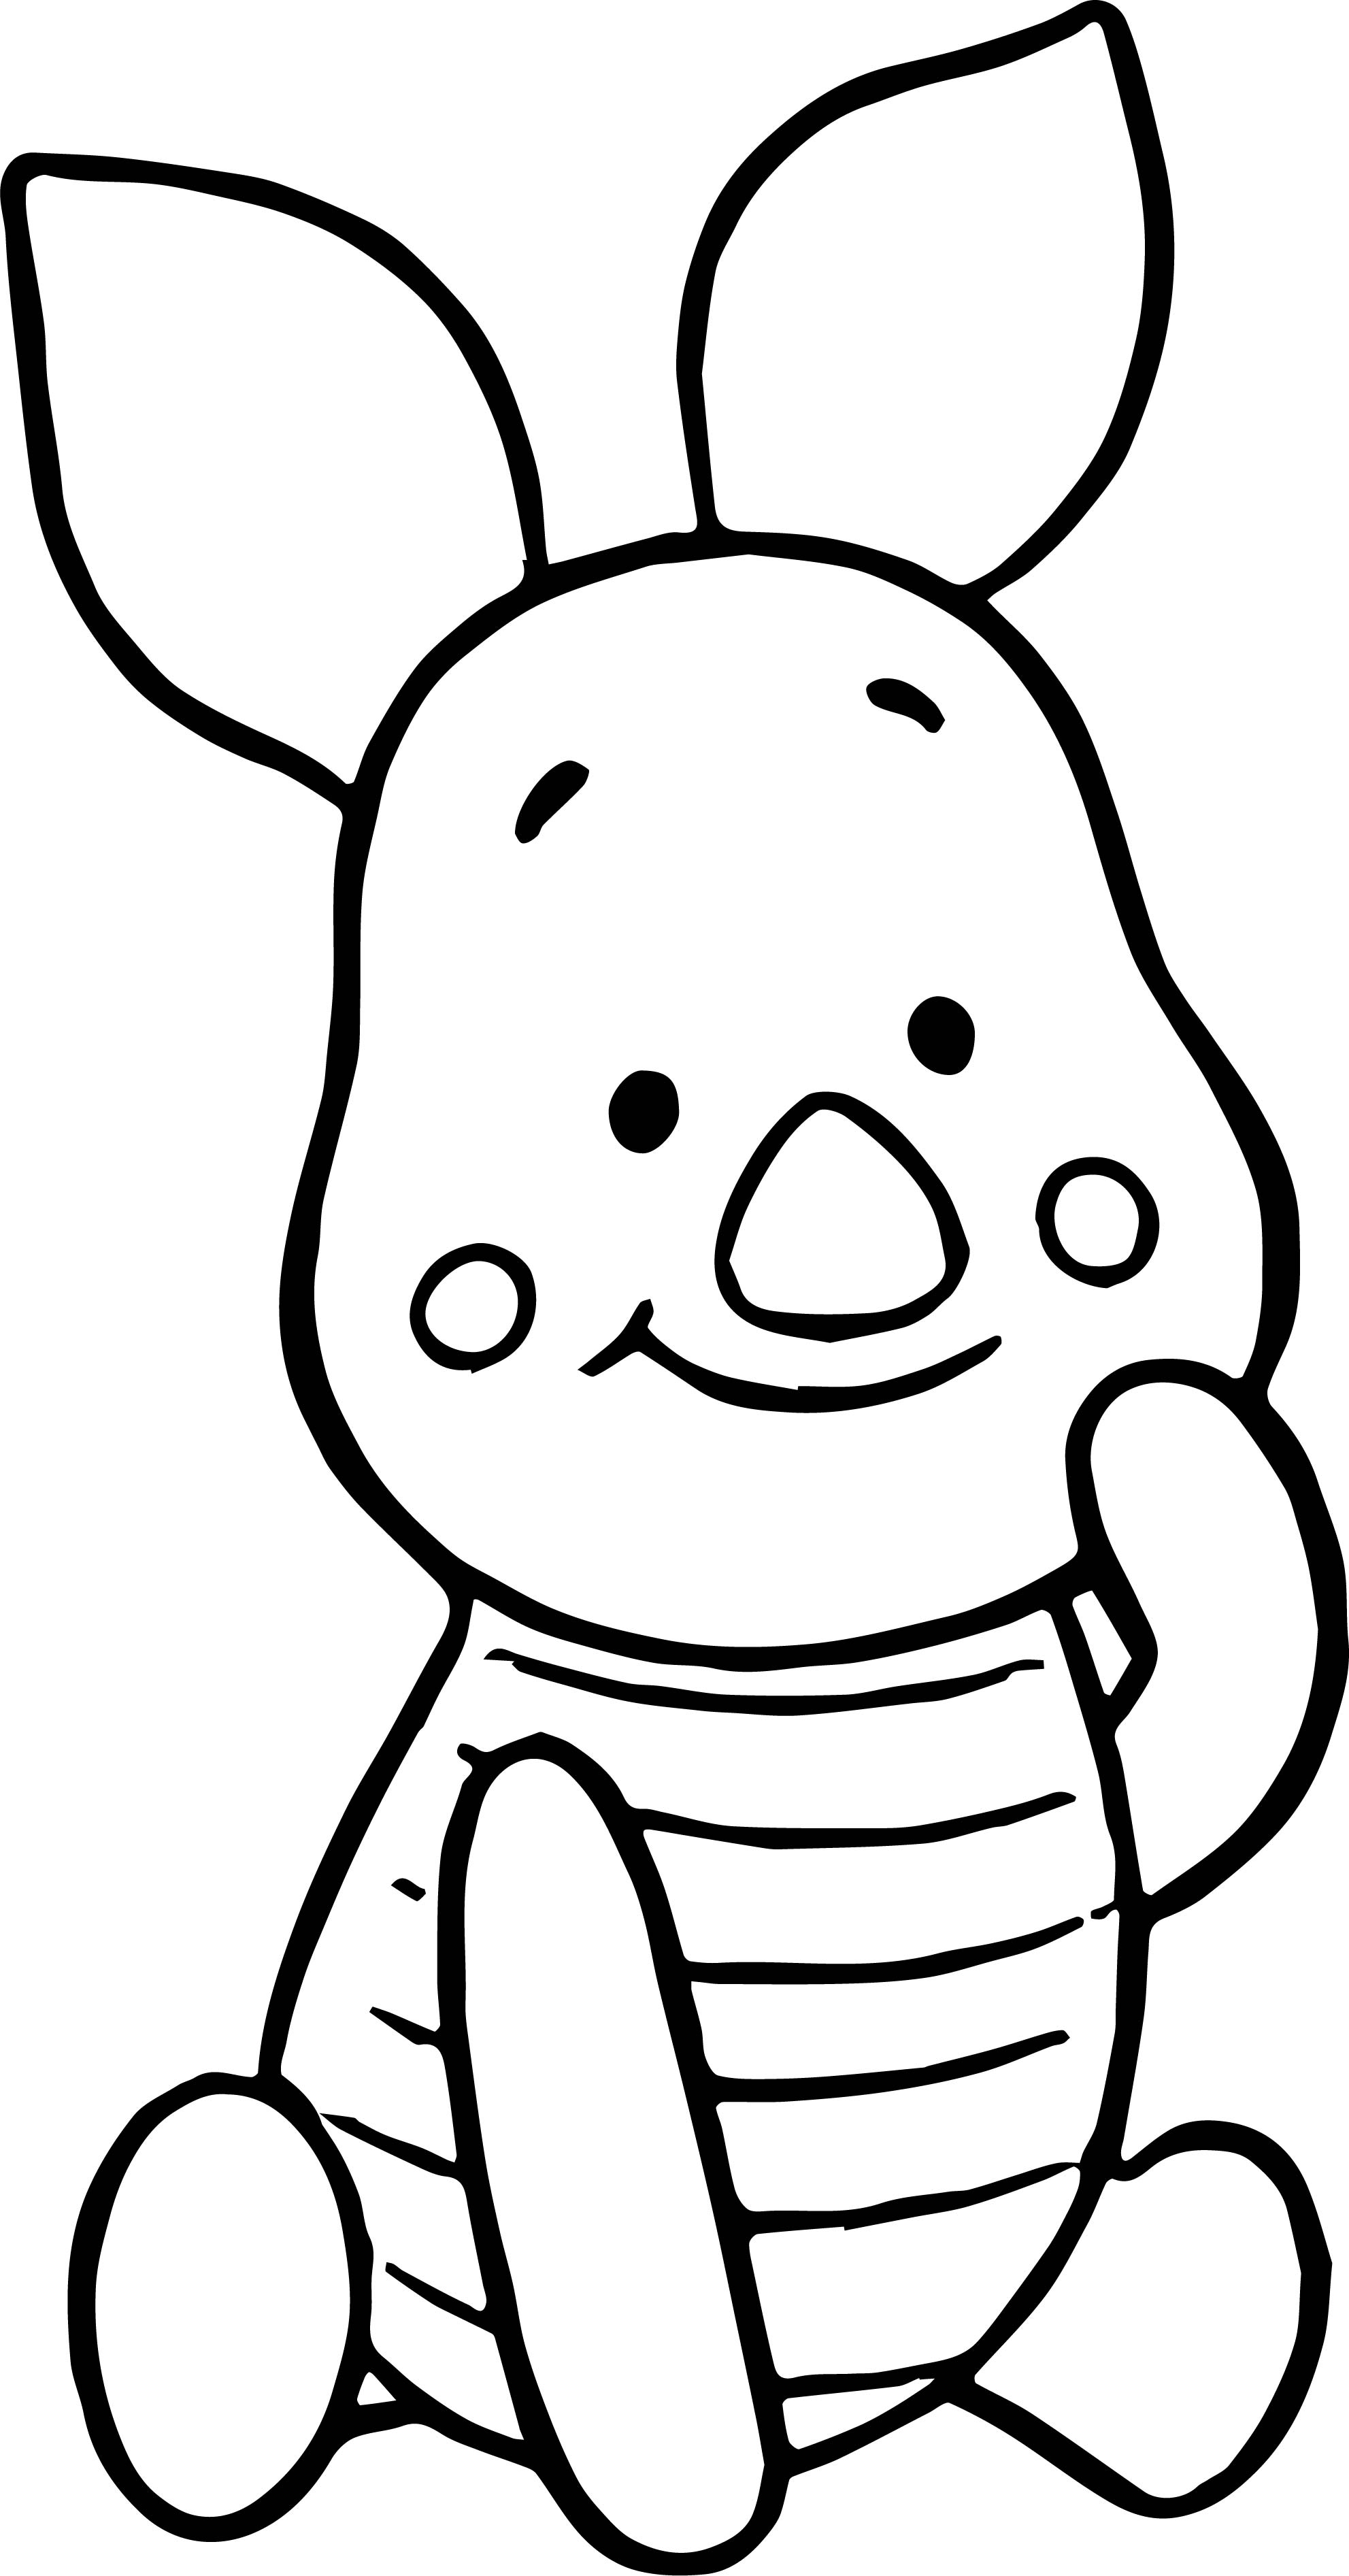 Baby Piglet Winnie The Pooh Touch Cheek Coloring Page